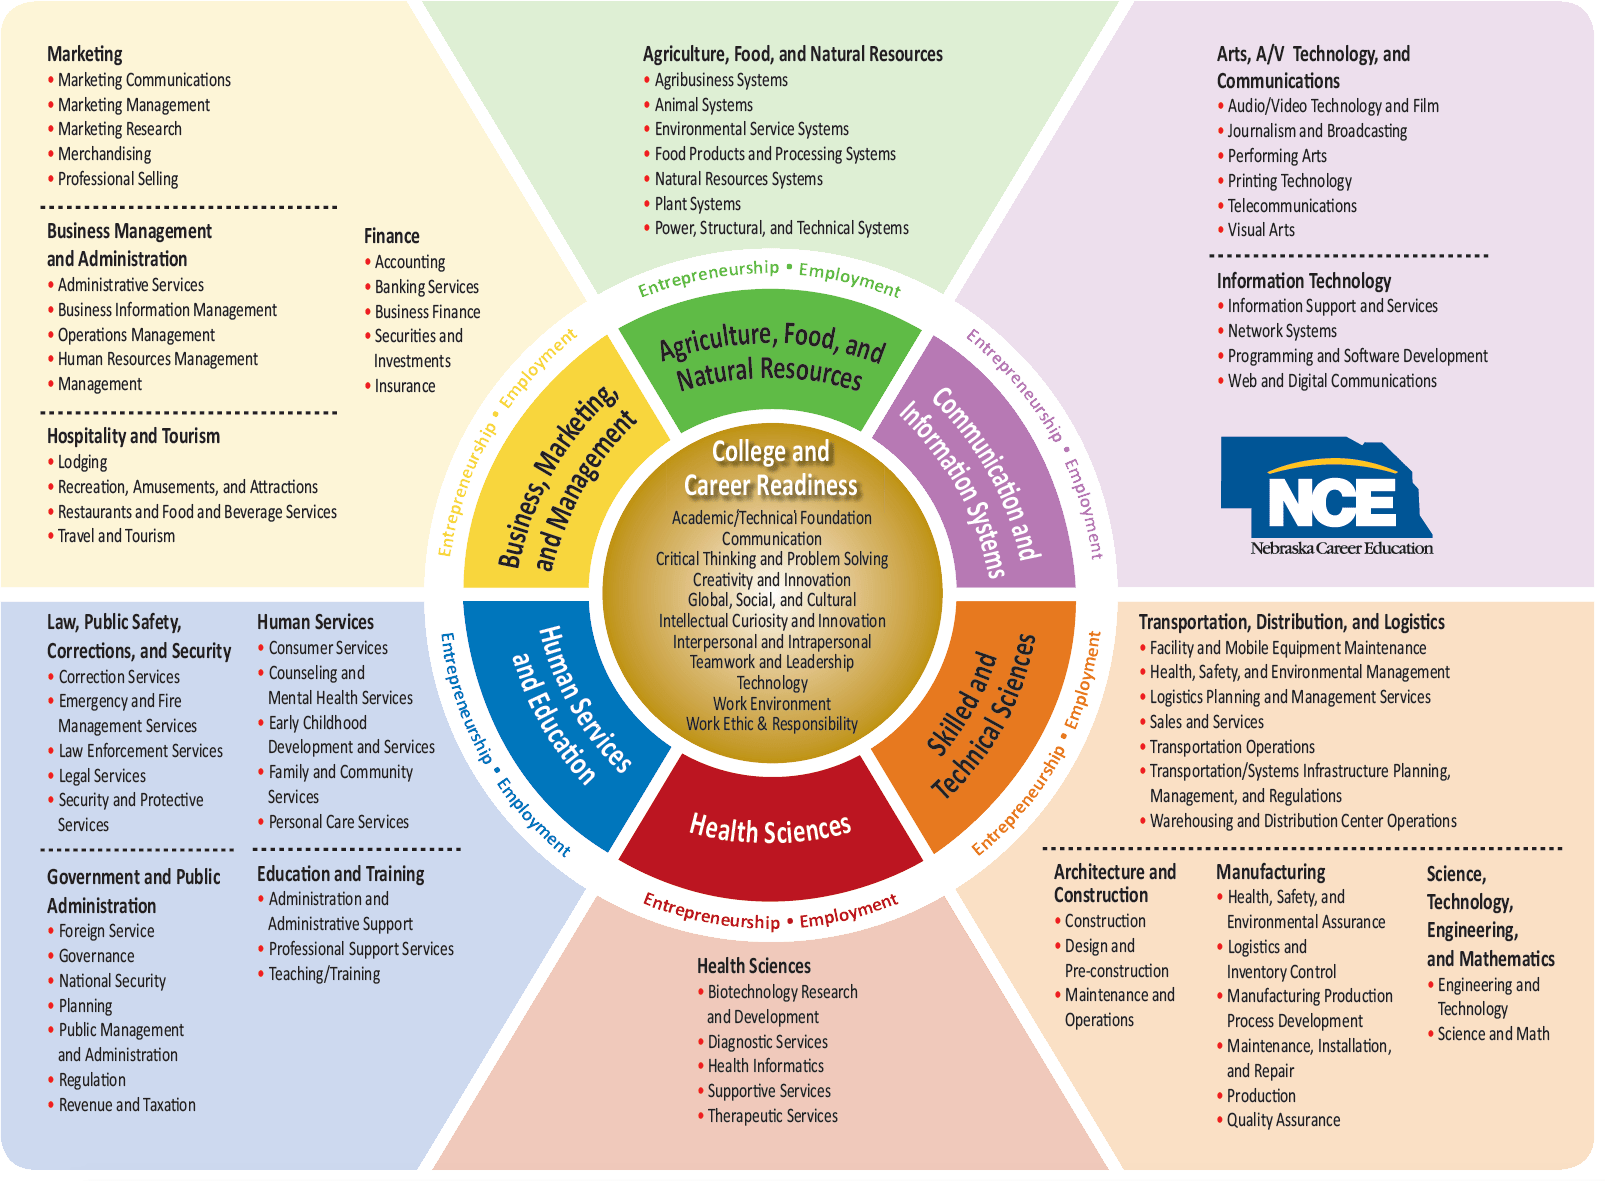 Nce Career Fields And Clusters Model